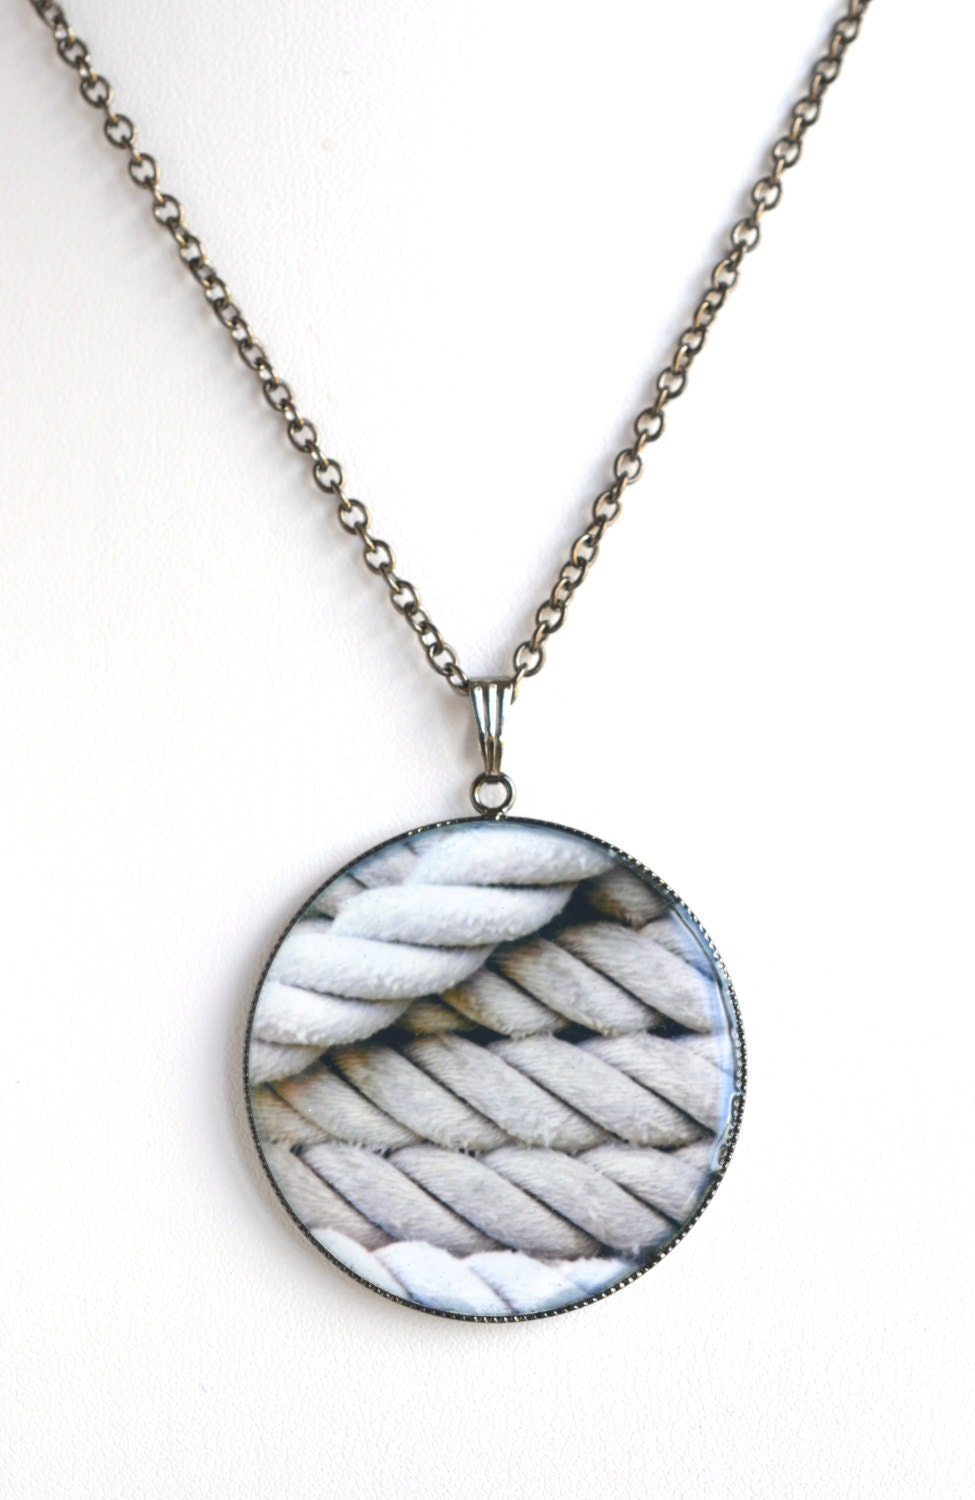 Boating necklace nautical necklace sailing jewelry